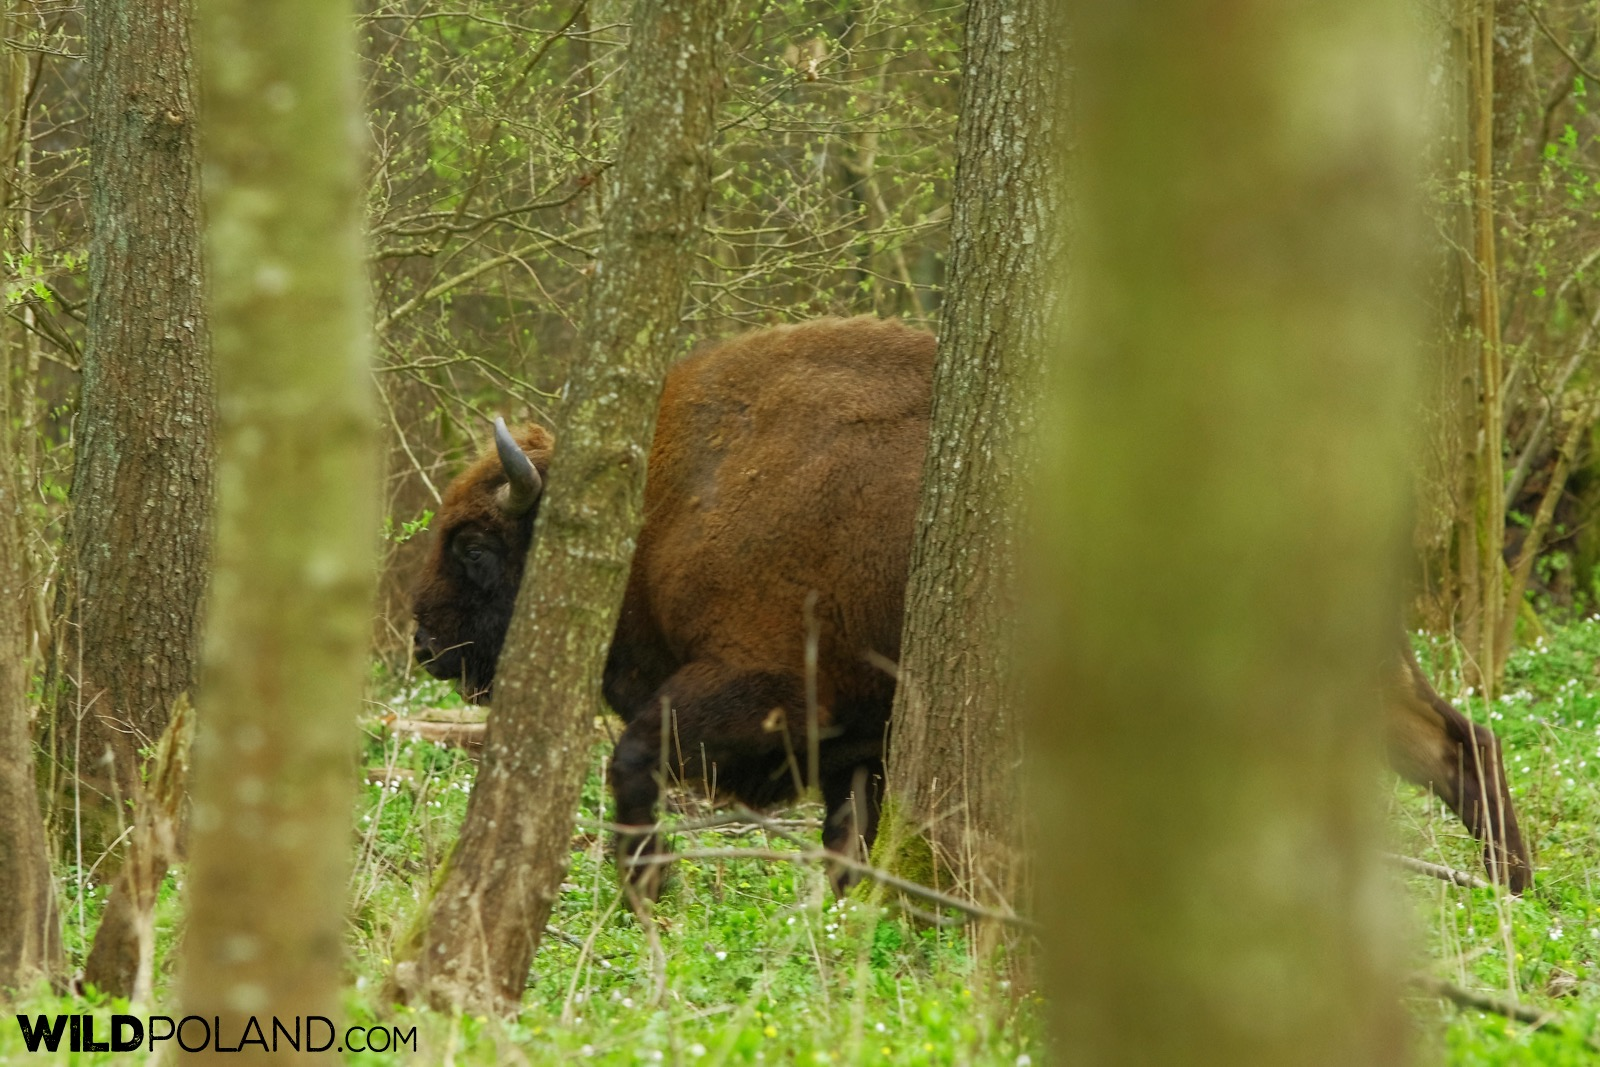 European Bison bull in the Białowieża Forest, photo by Andrzej Petryna